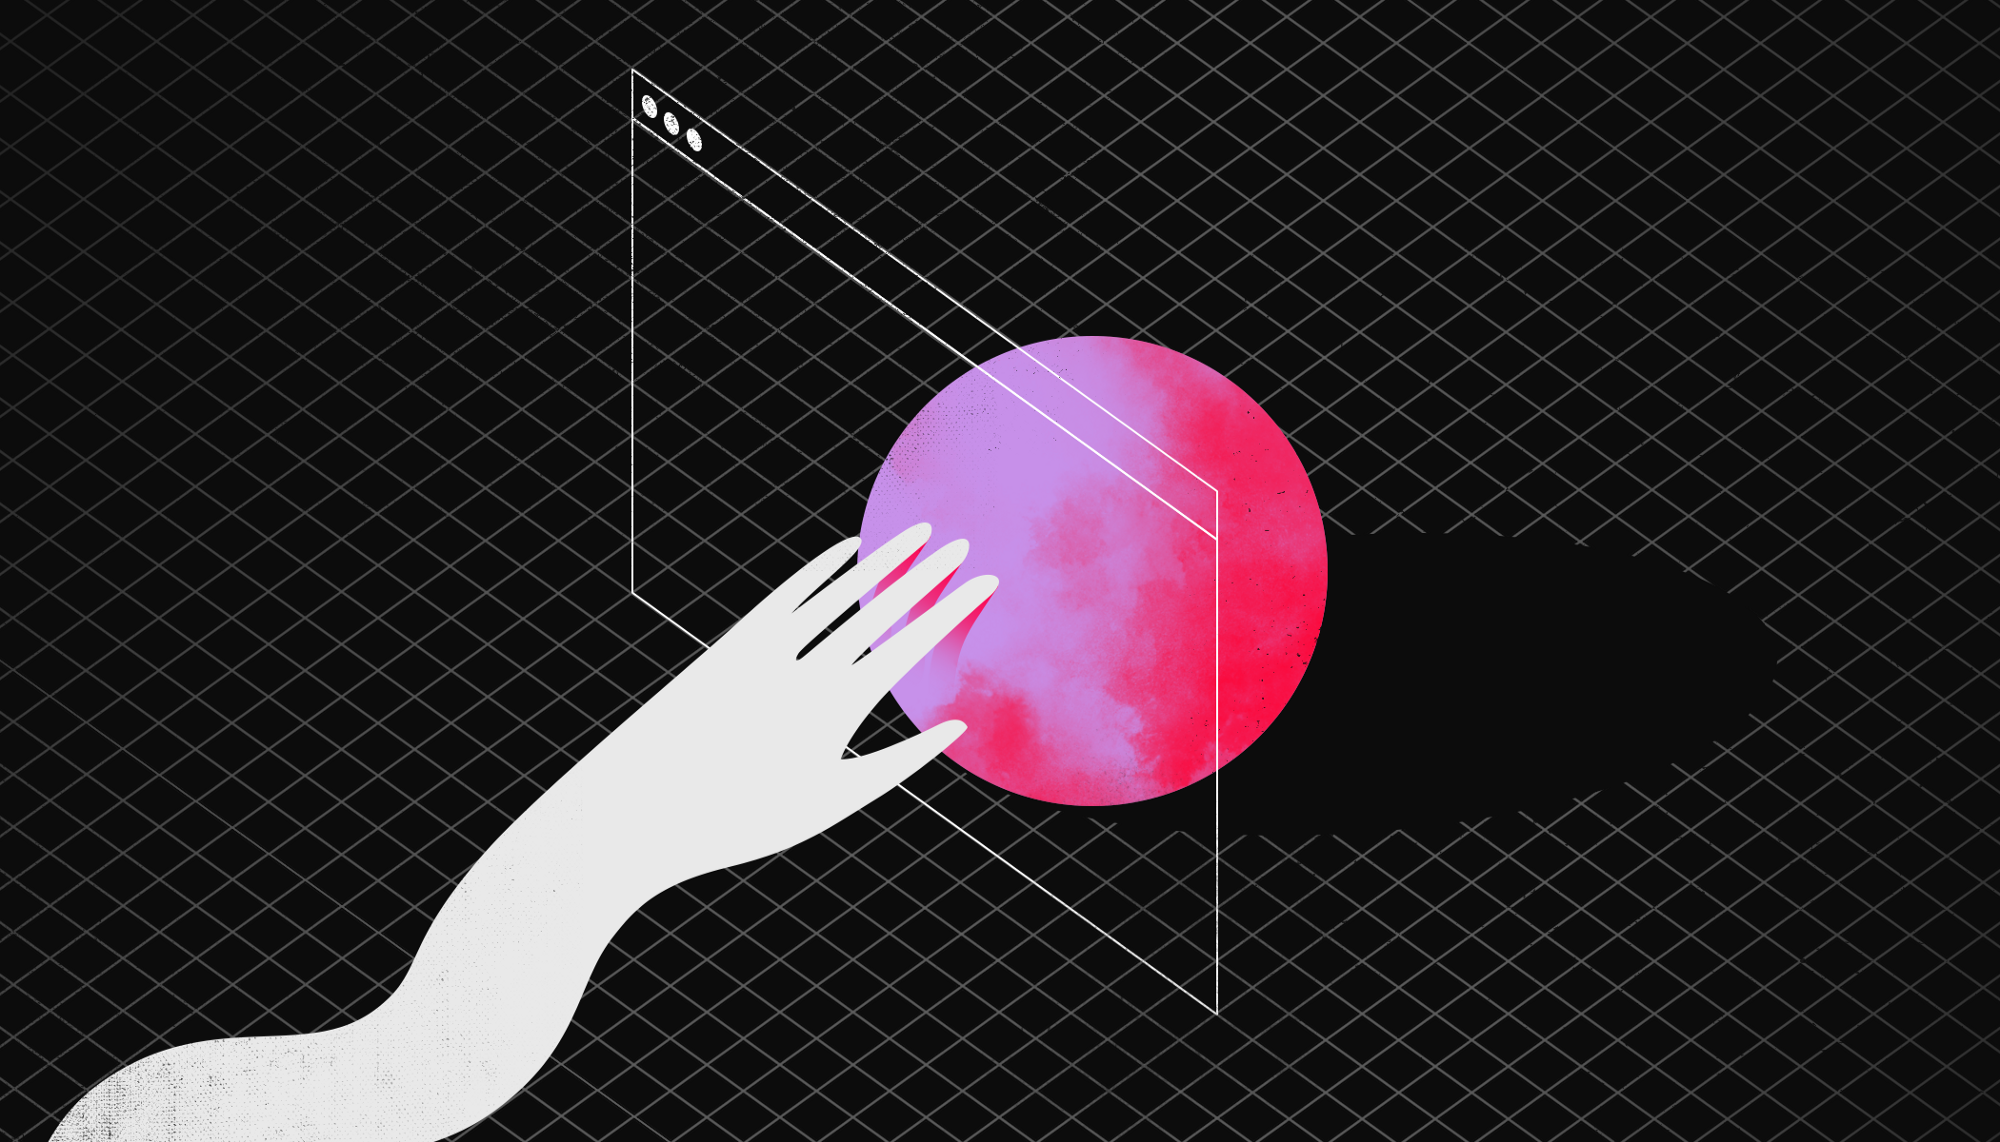 An illustration depicting a hand reaching into a digital browser window and physical sphere.